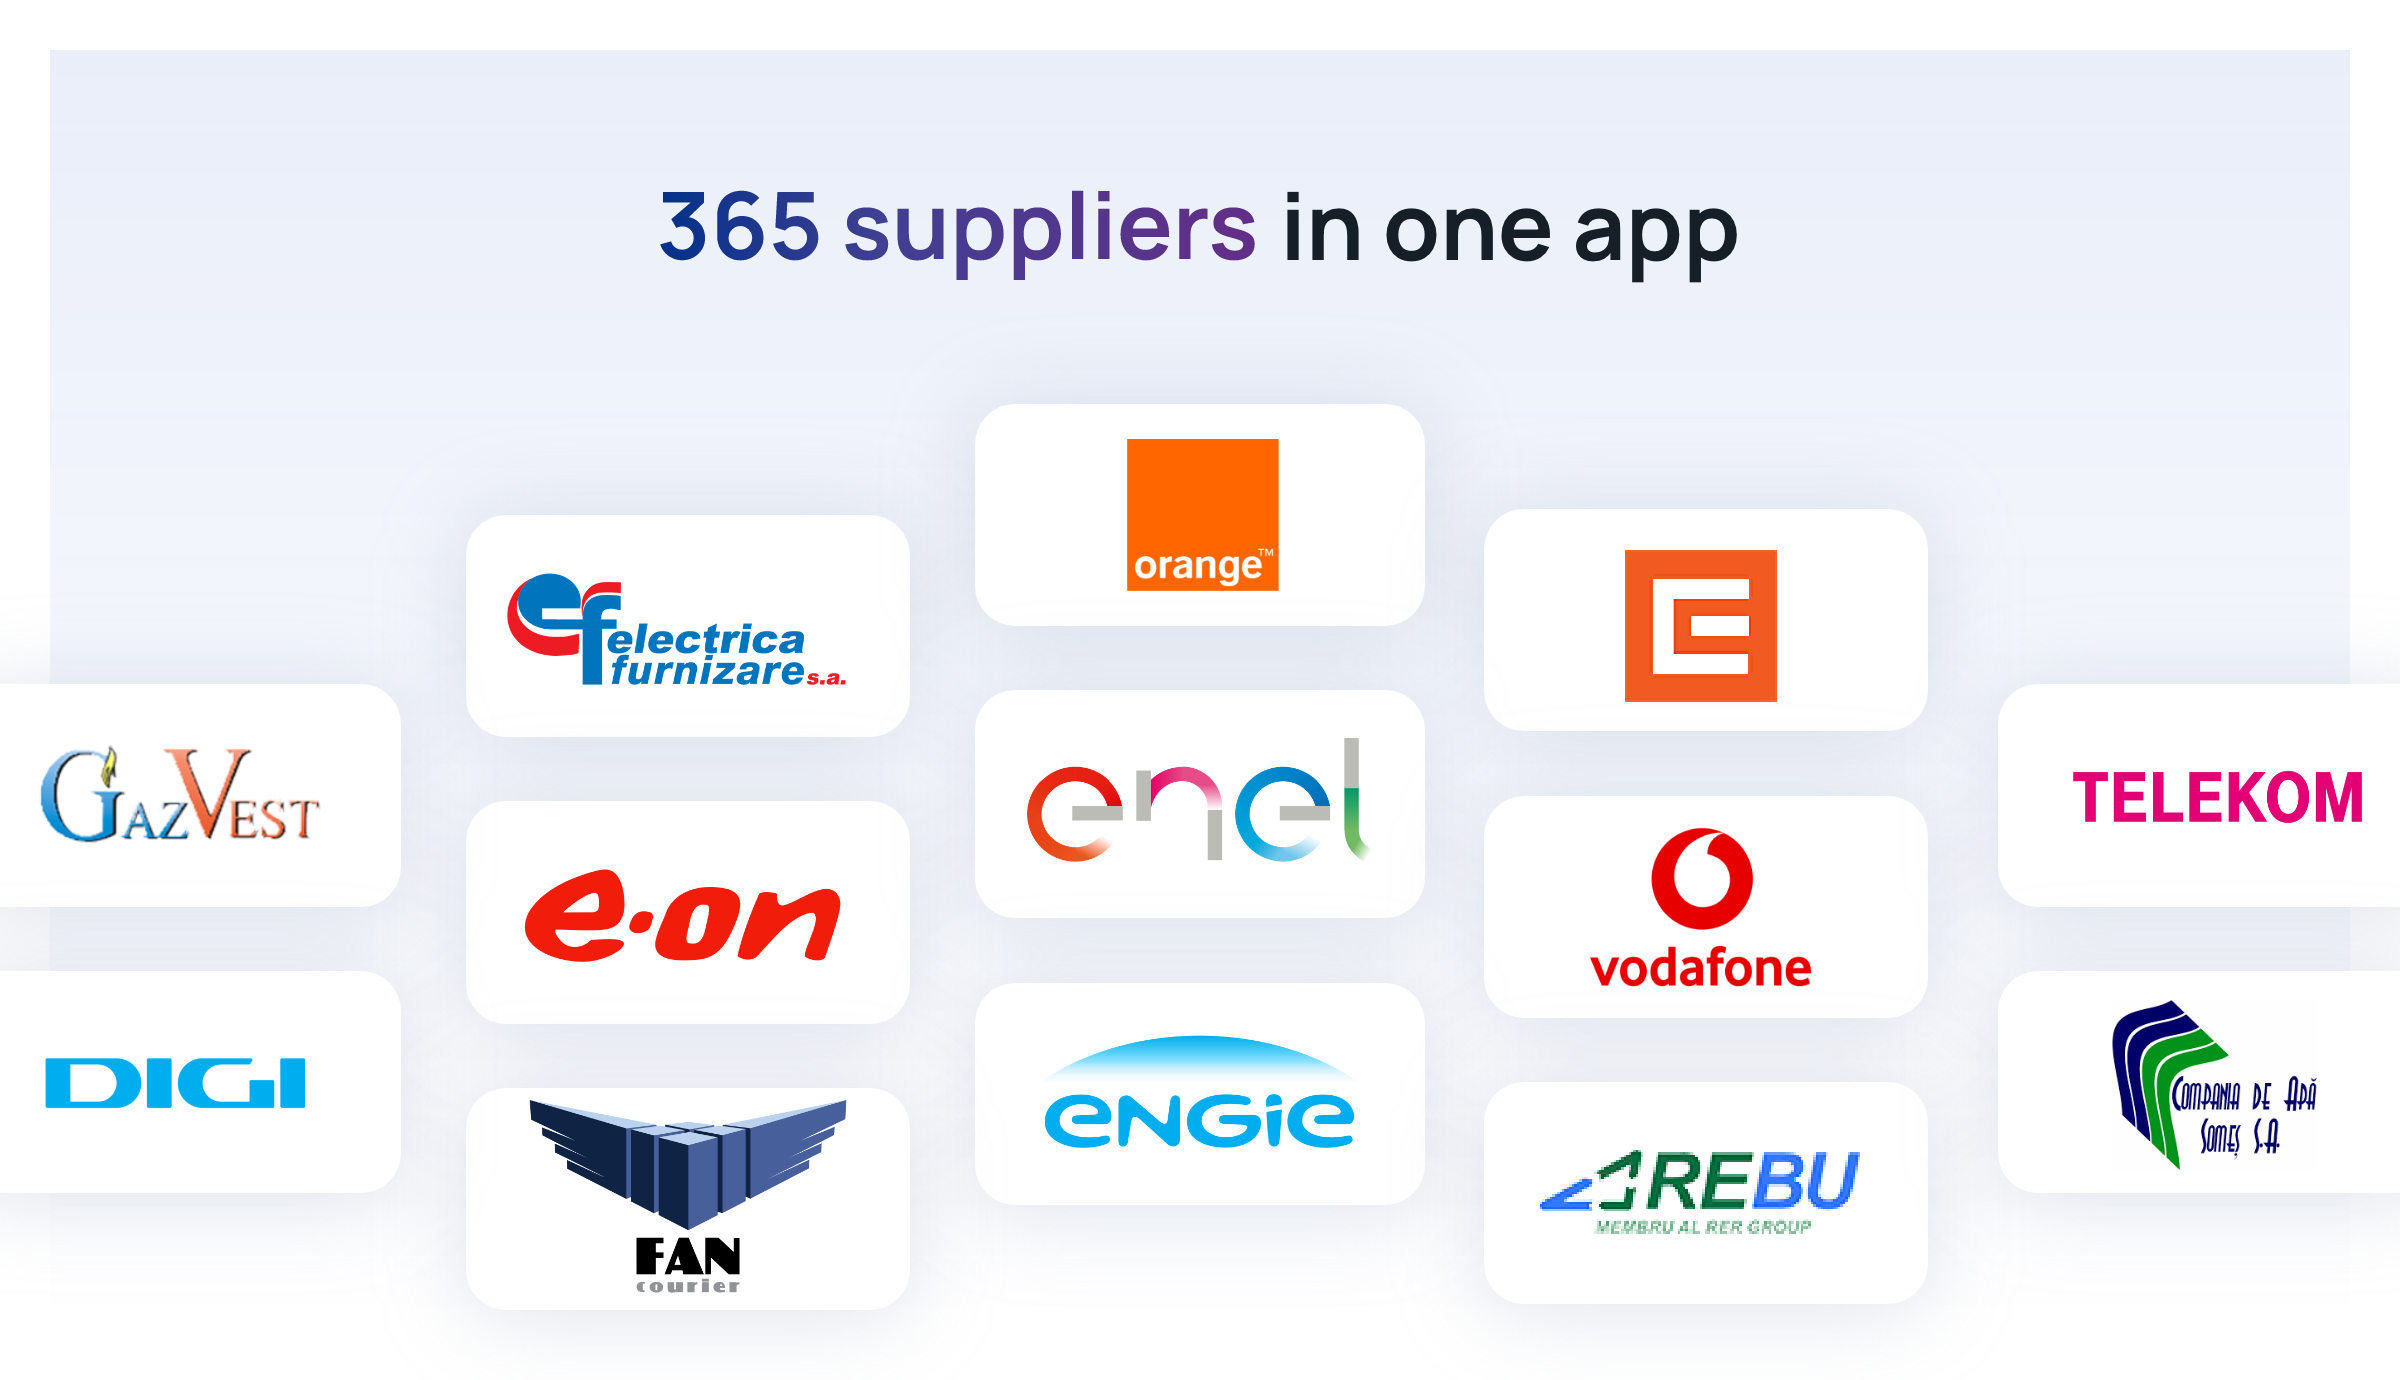 Everything about suppliers available in Pago. Over 365 are now one click away!